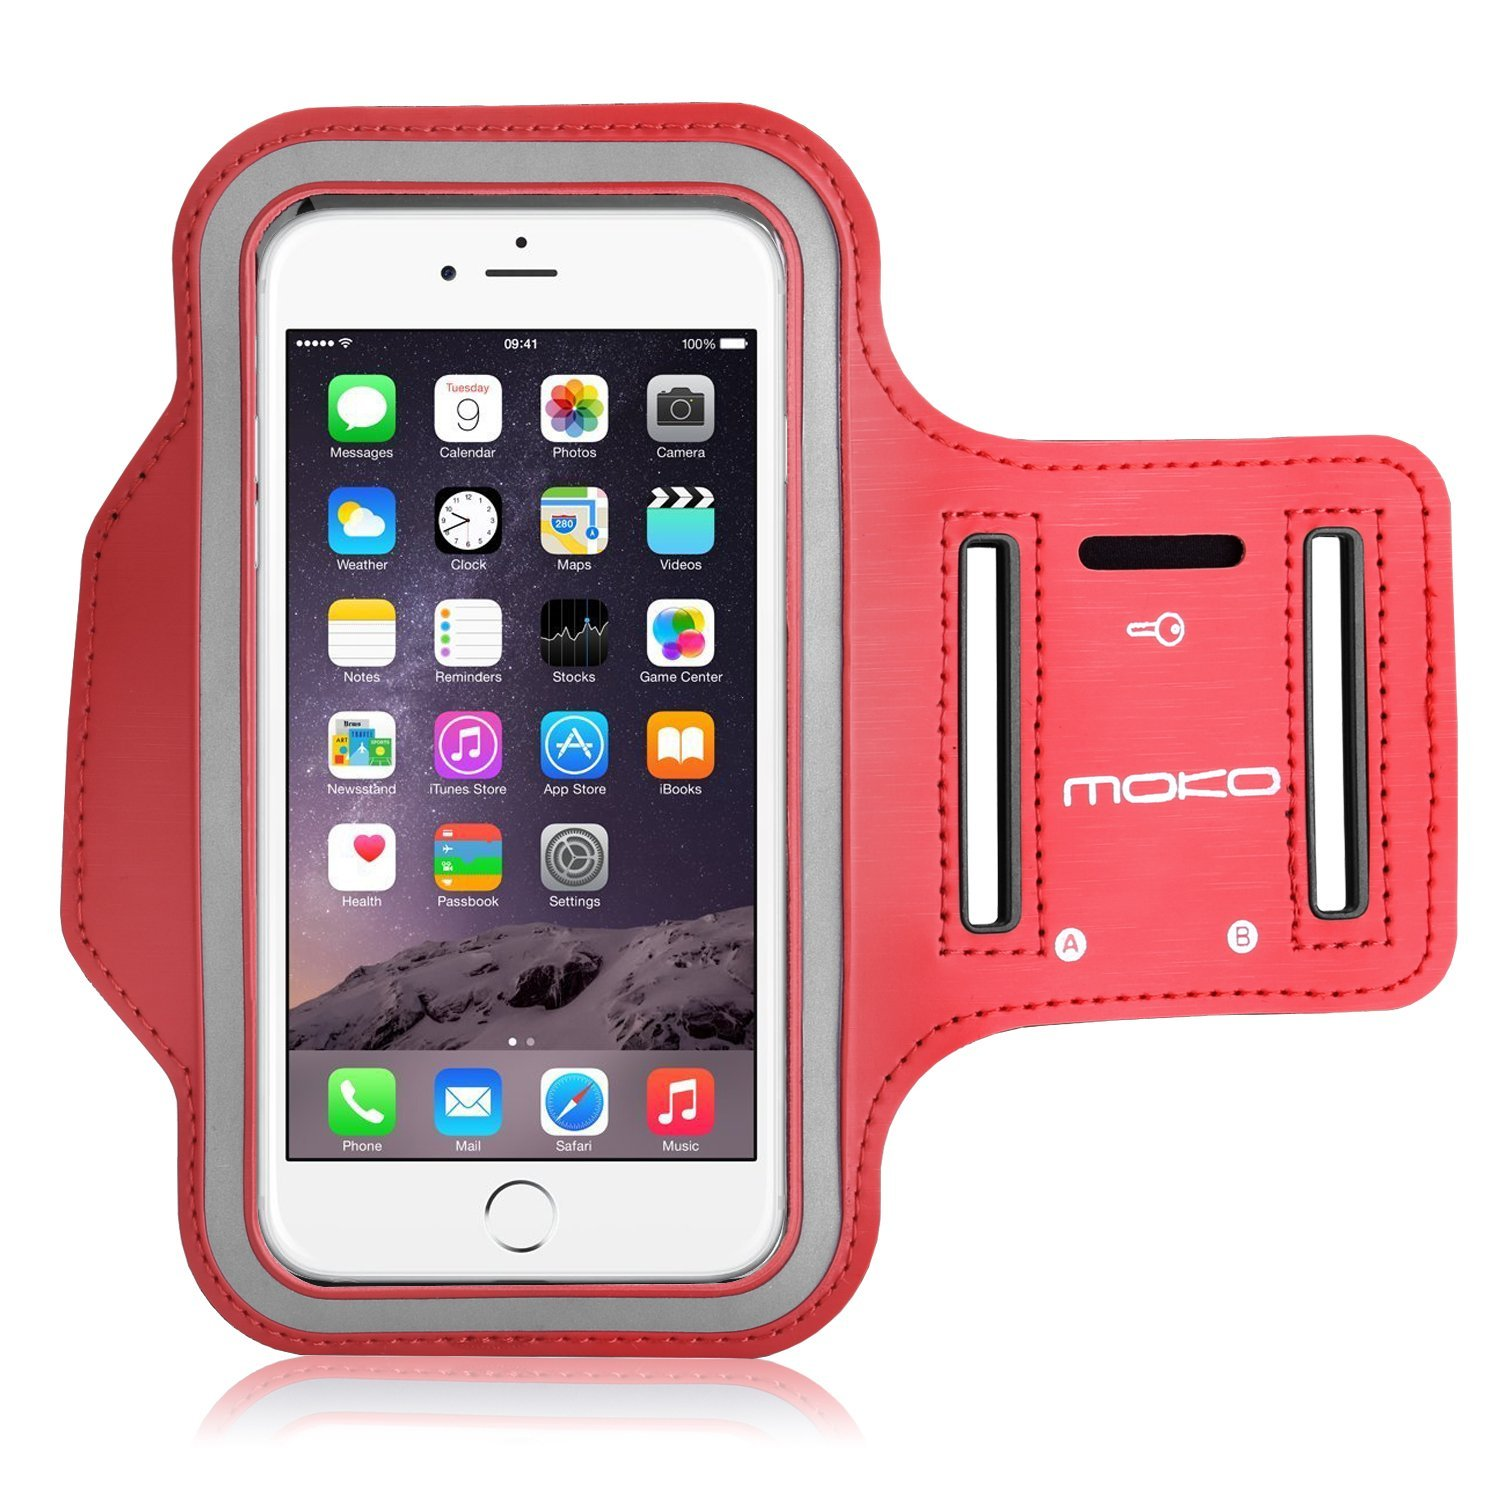 MoKo Sports Armband for iPhone 6s Plus / iPhone 6 Plus, Samsung Galaxy Note 5 / S6 edge+, Droid Turbo and LG G4 / G3, Card Slot, Sweat-proof, Rojo (Size L, ...